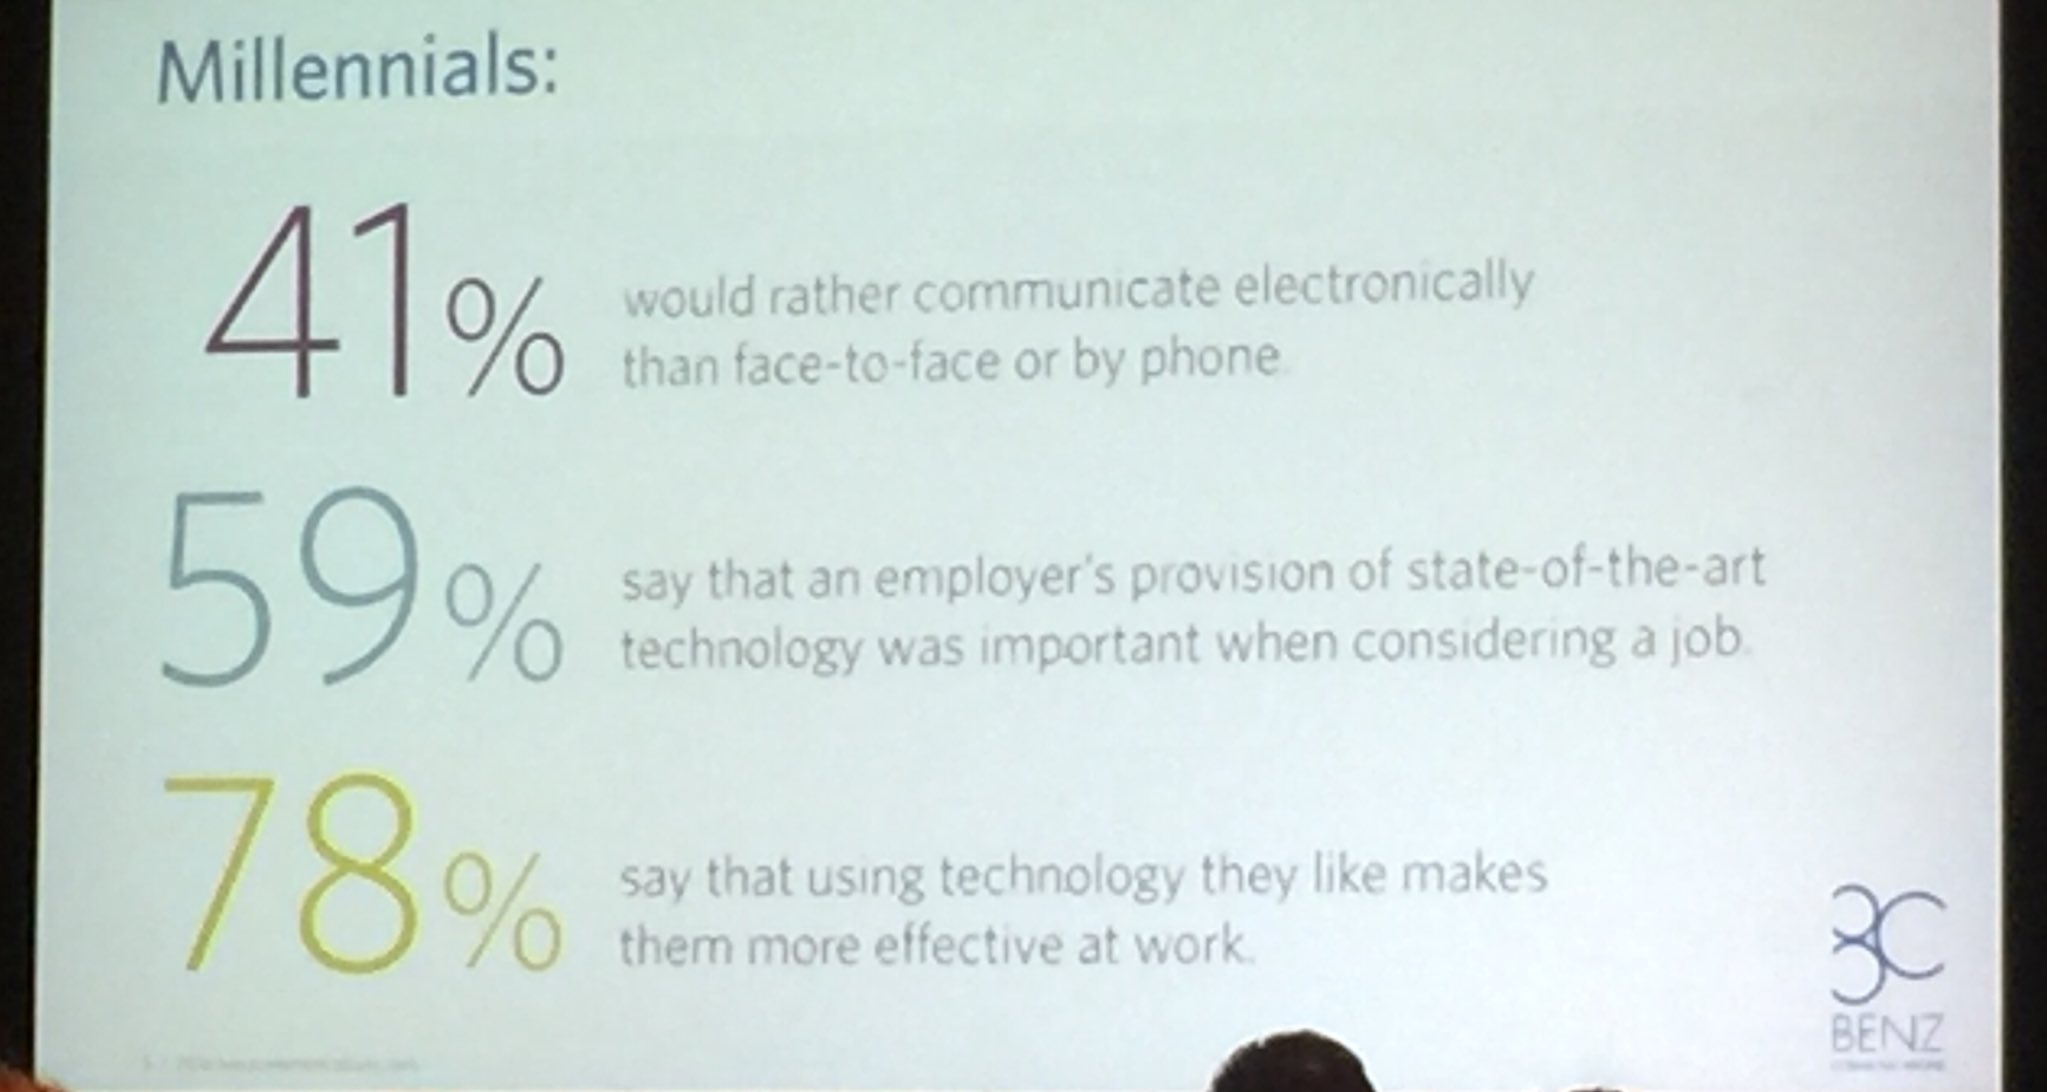 "RT HRTechConf ""RT Jamie_Russell: Some stats on communication preferences specific to #Millennials from #HRTechConf. https://t.co/xyjOma7z5r"""